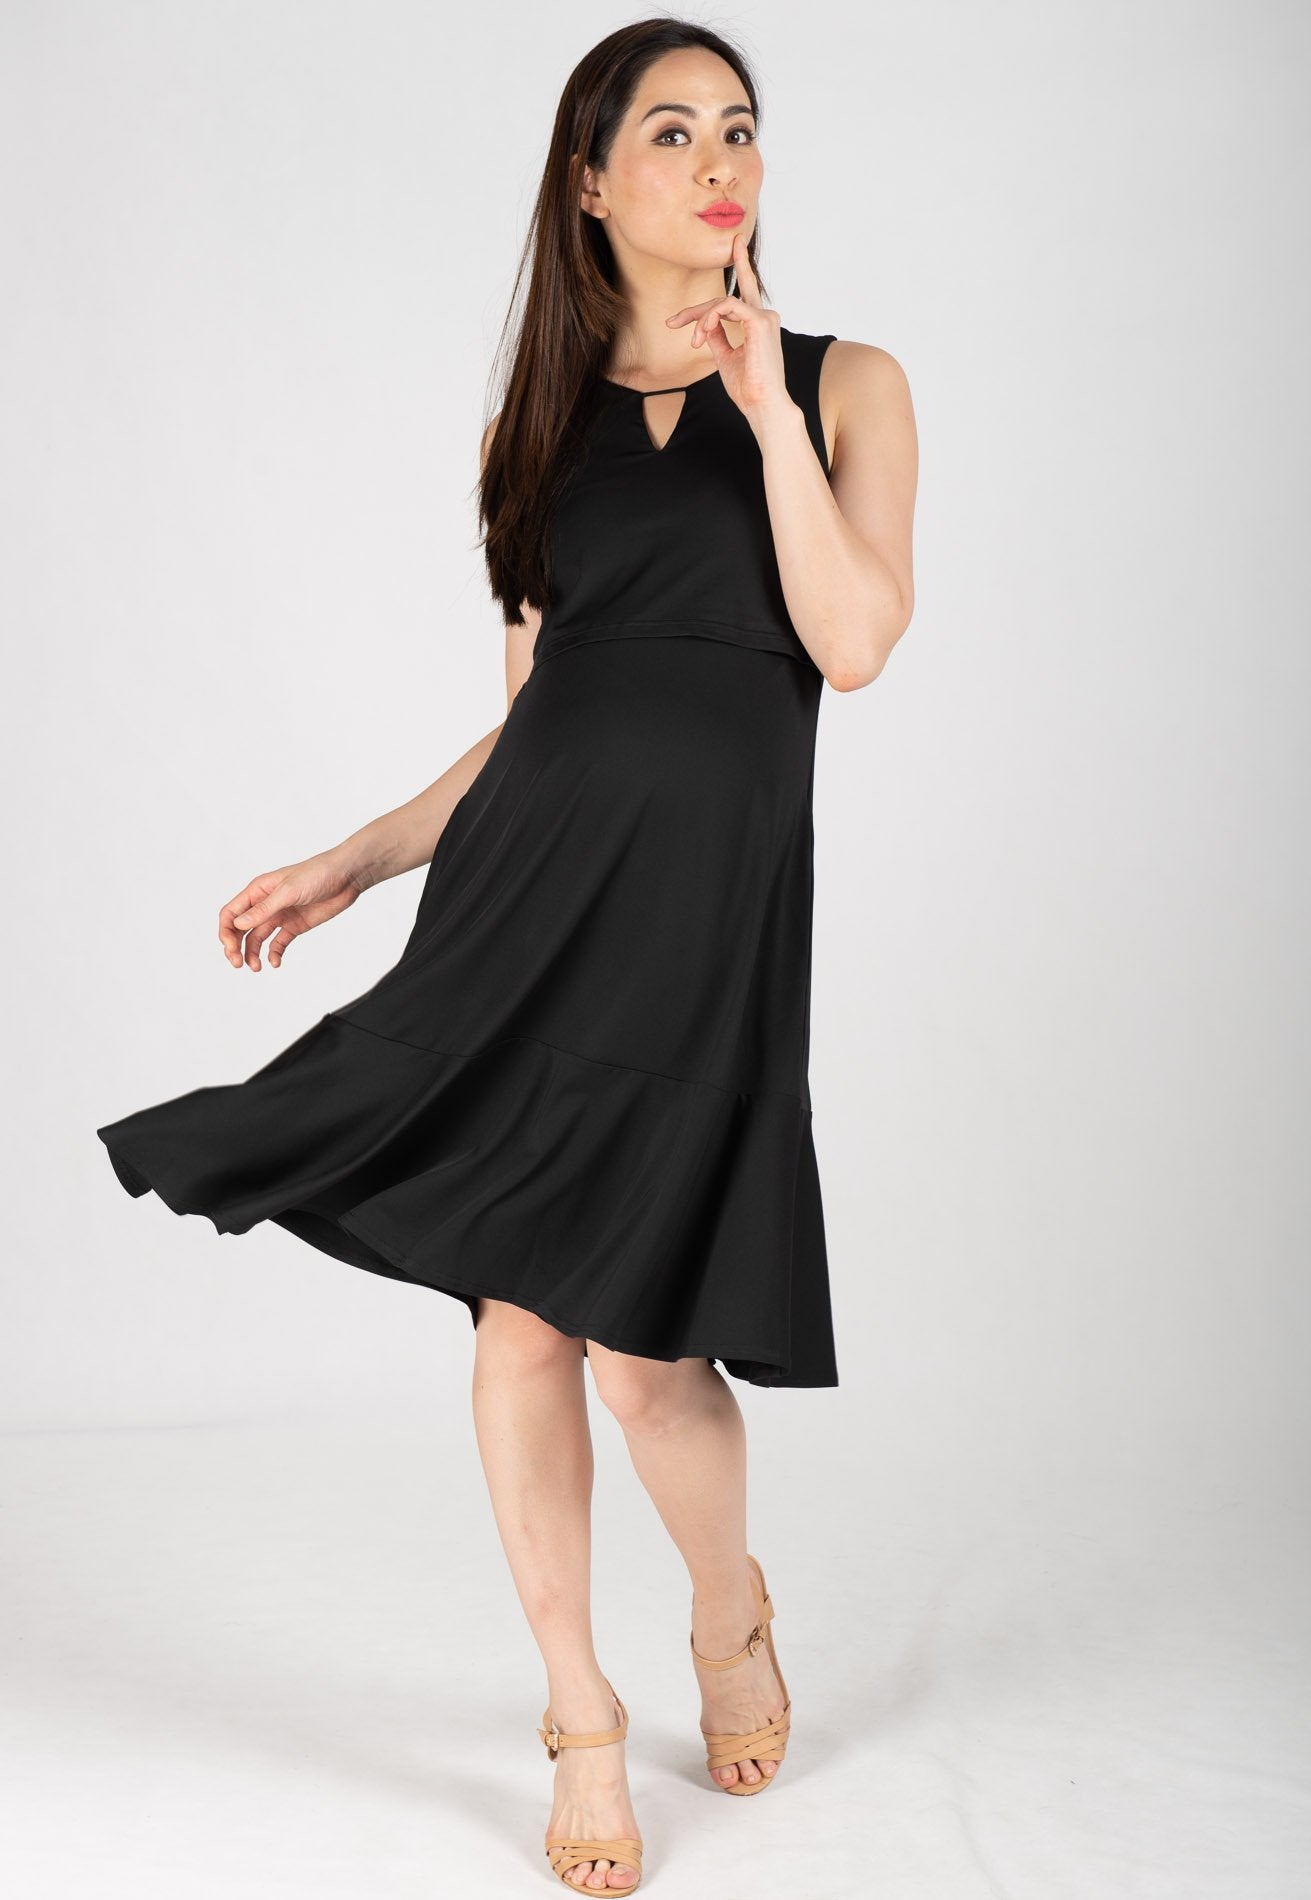 Mothercot Peplum Hem Nursing Dress  by JumpEatCry - Maternity and nursing wear